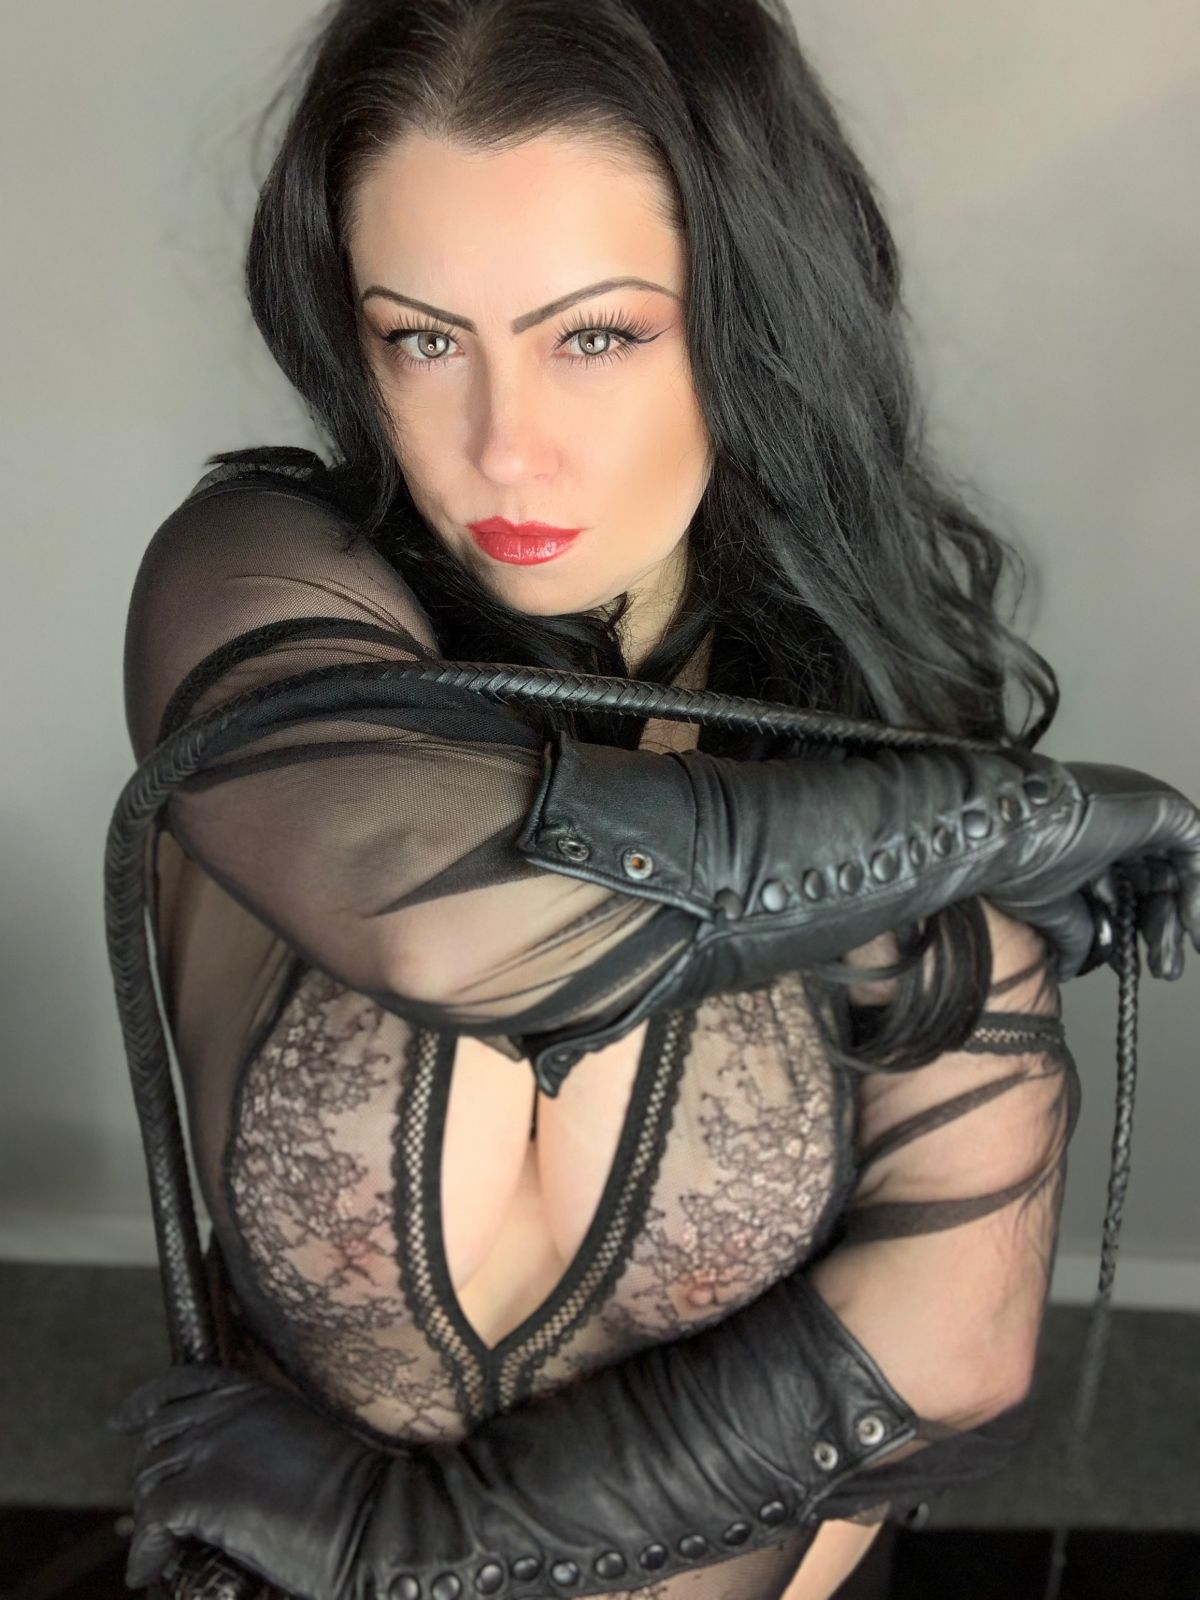 Seattle Dominatrix: FemDom Mistress: Victoria Rage photos and videos onlyfans leaked